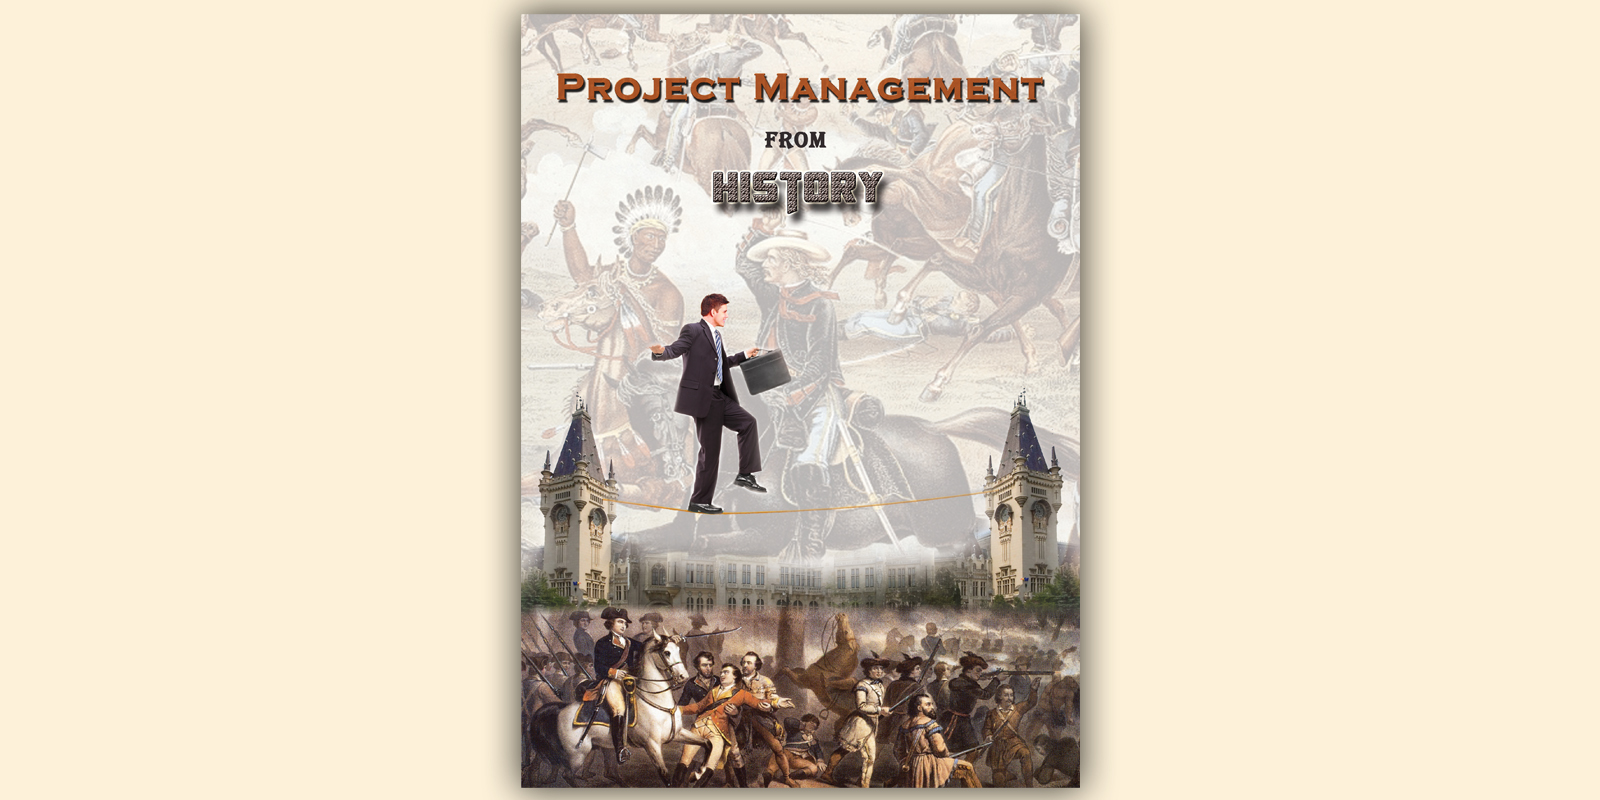 Book Cover Design Project : Book cover design for project management from history